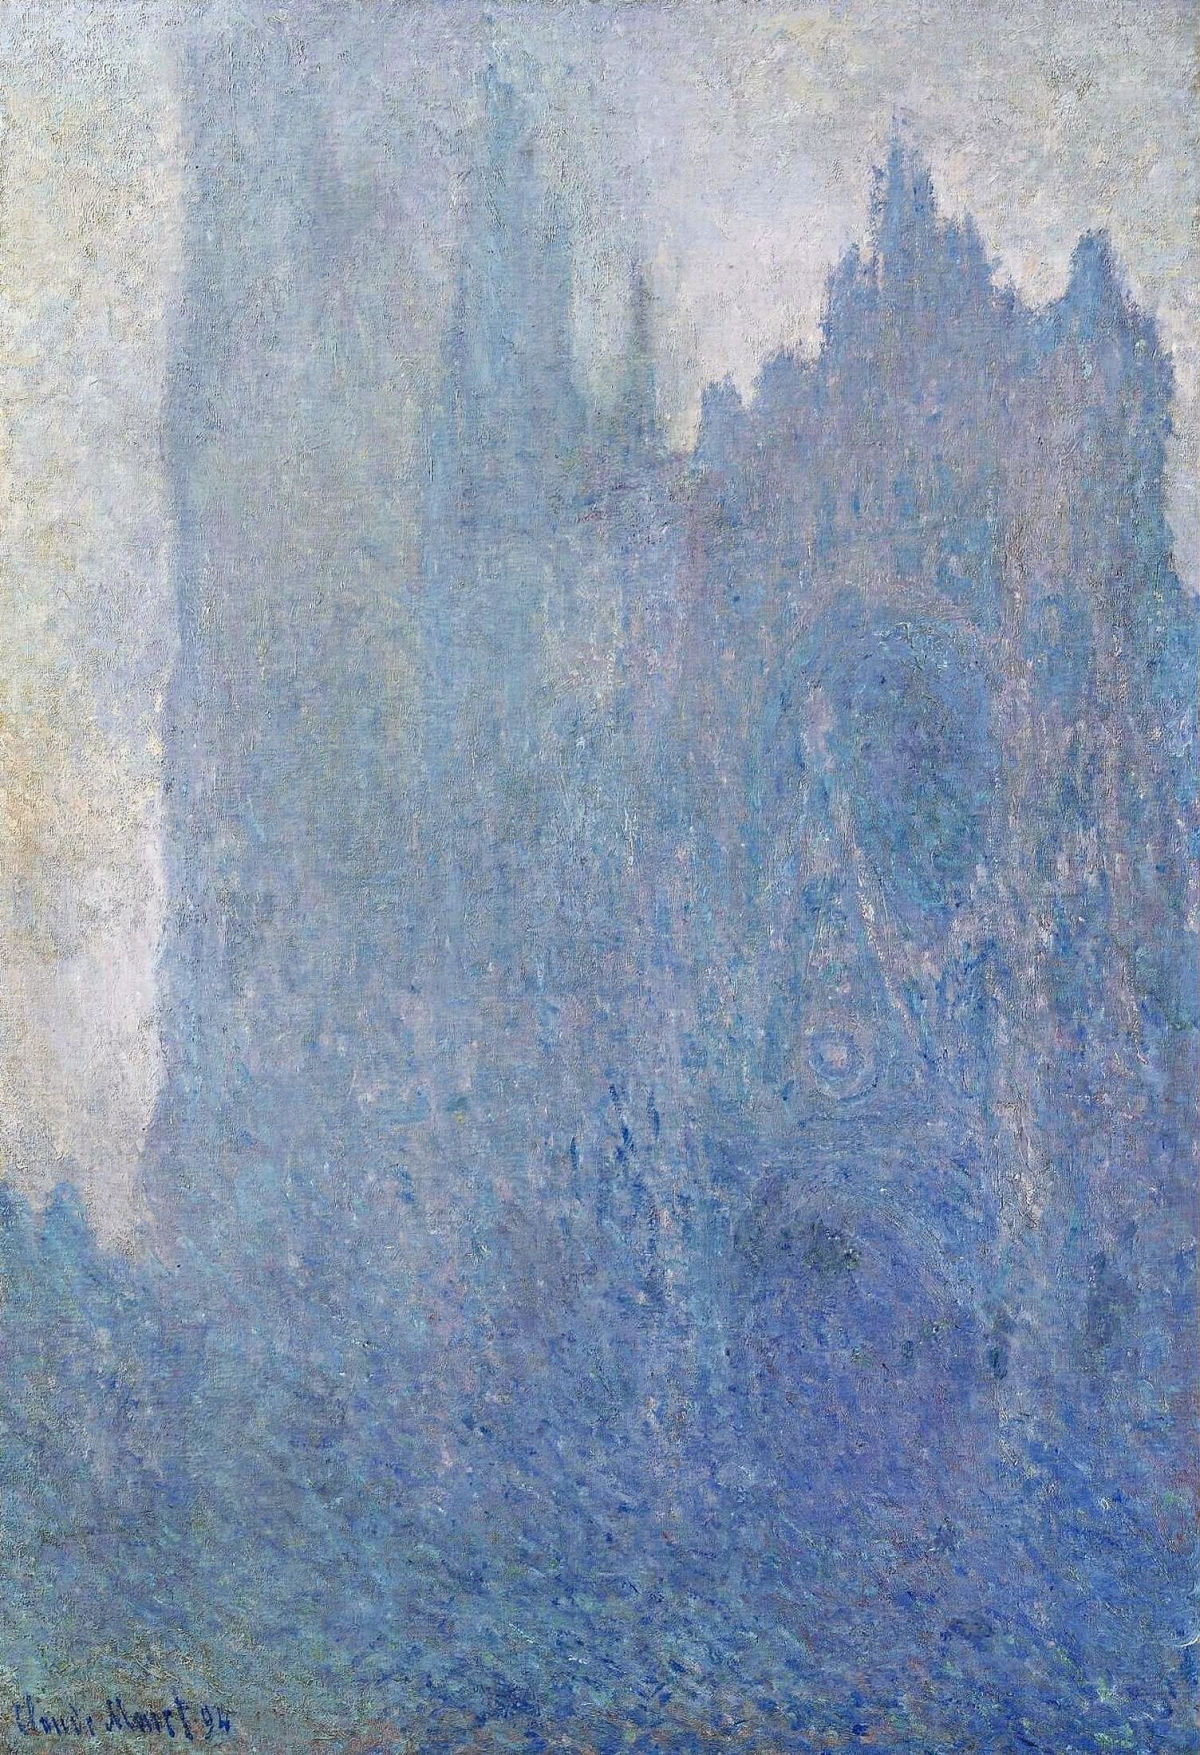 Monet, Rouen Cathedral in the fog